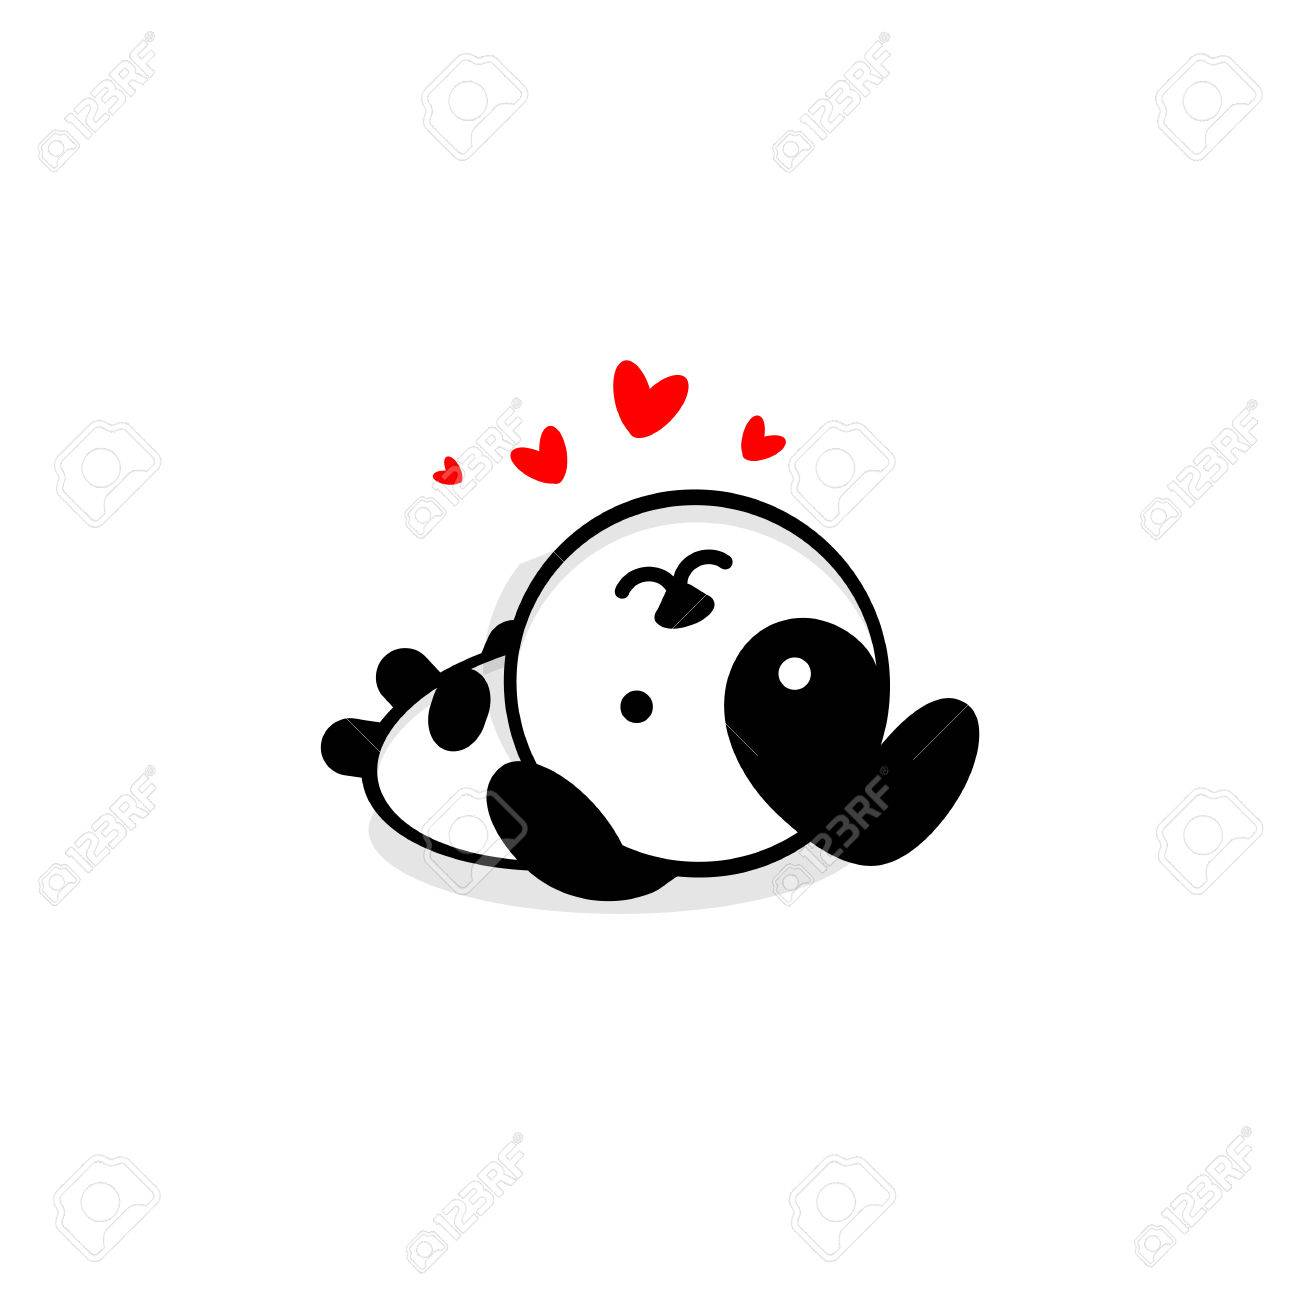 Cute Dog In Love And Rest Vector Illustration Baby Puppy Logo Royalty Free Cliparts Vectors And Stock Illustration Image 80443772